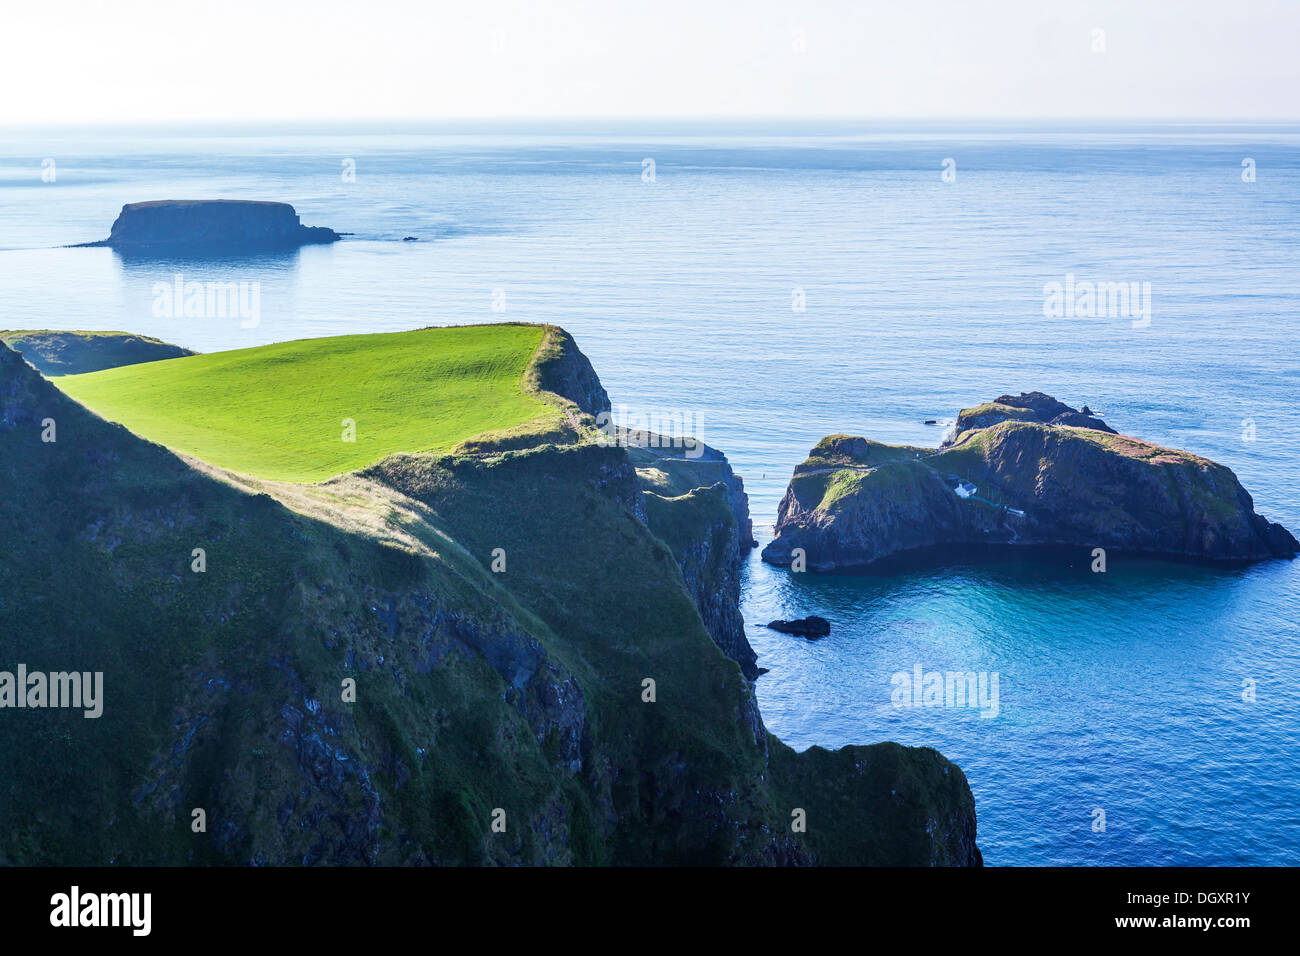 Carrick-a-Rede, Co. Antrim, Northern Ireland - Stock Image